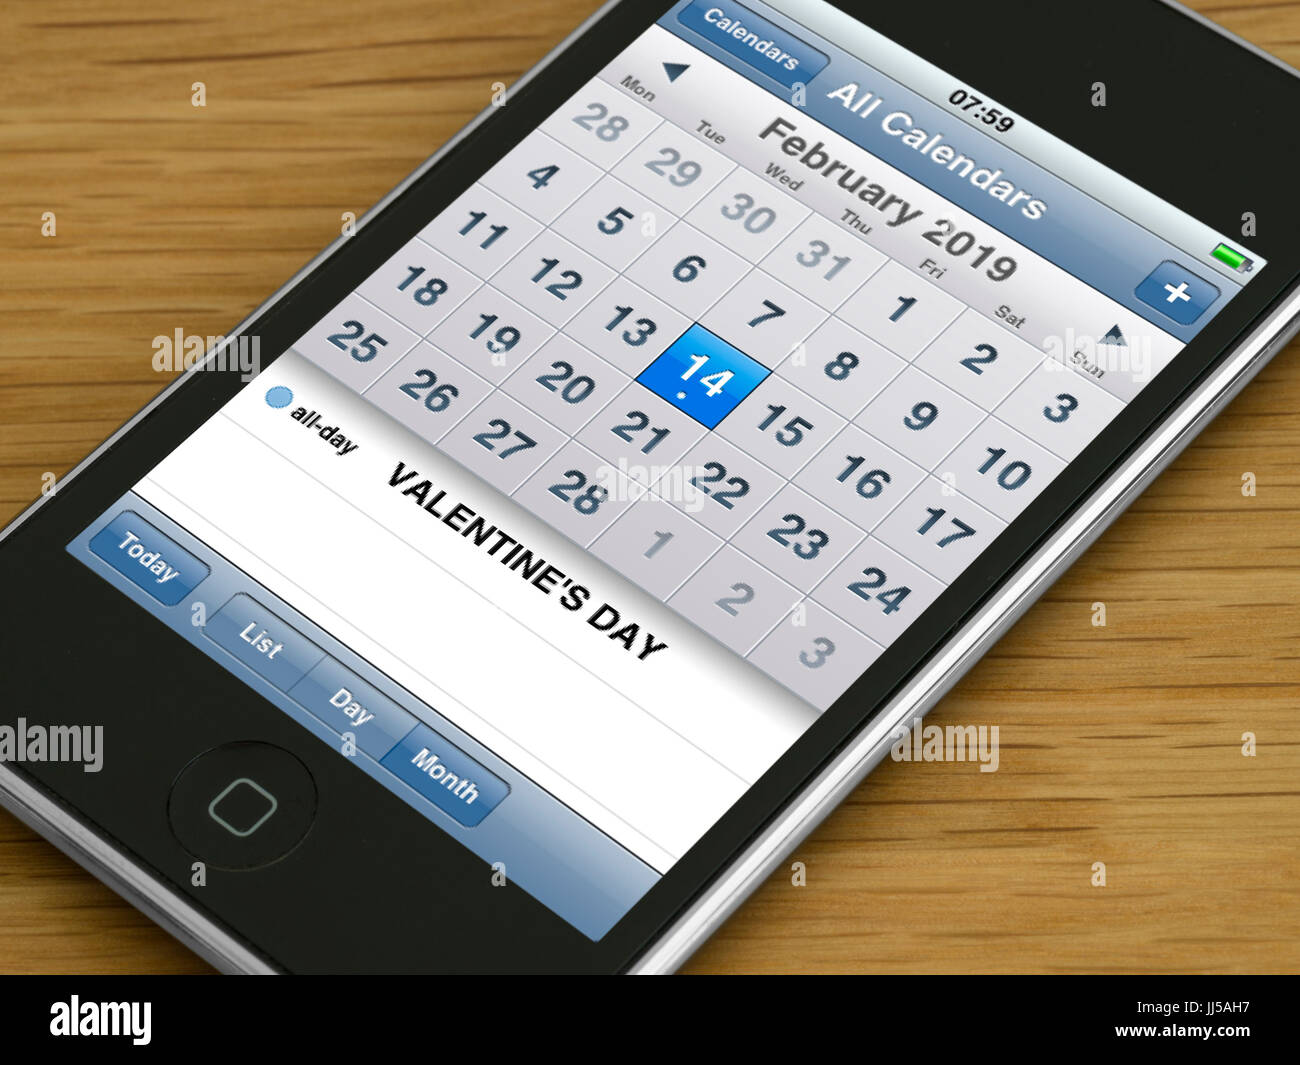 Valentine S Day 2019 Reminder On Mobile Phone Calendar Diary Display